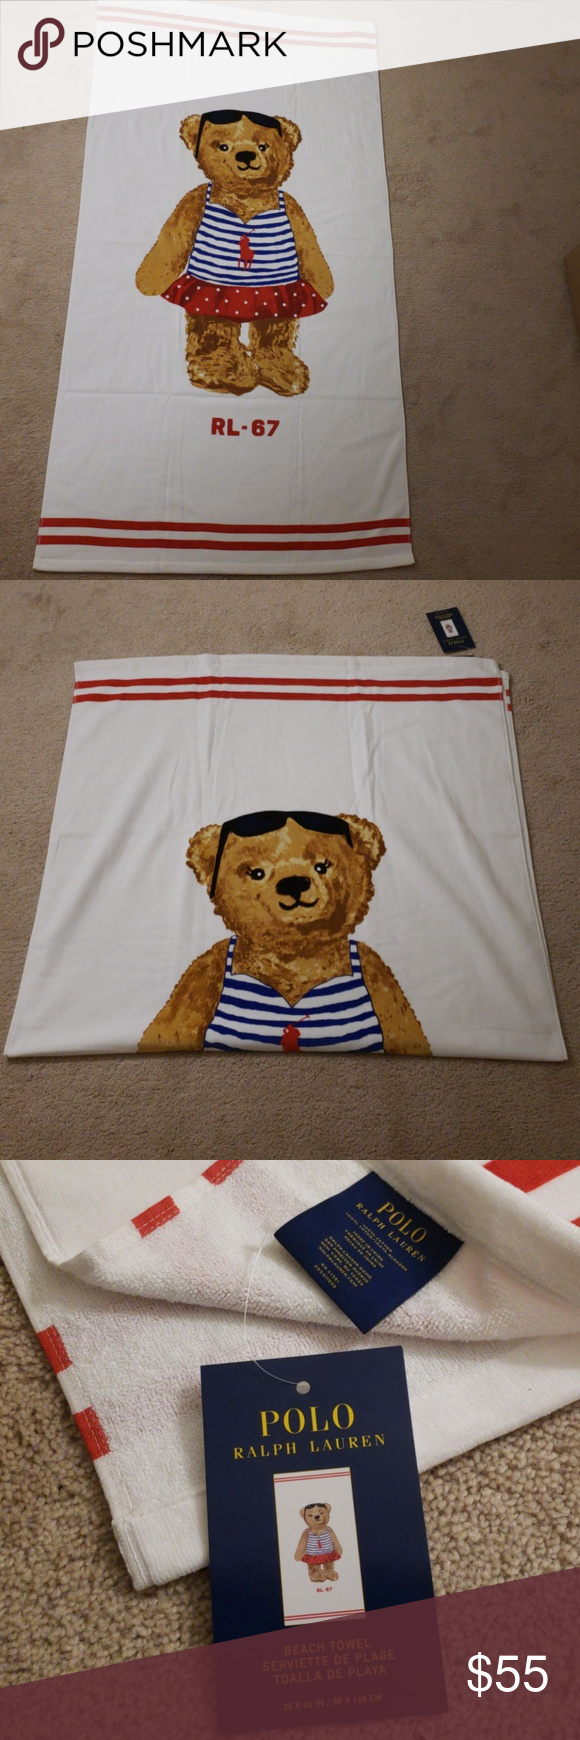 Polo Ralph Lauren Oversized Beach Towel Nwt With Images